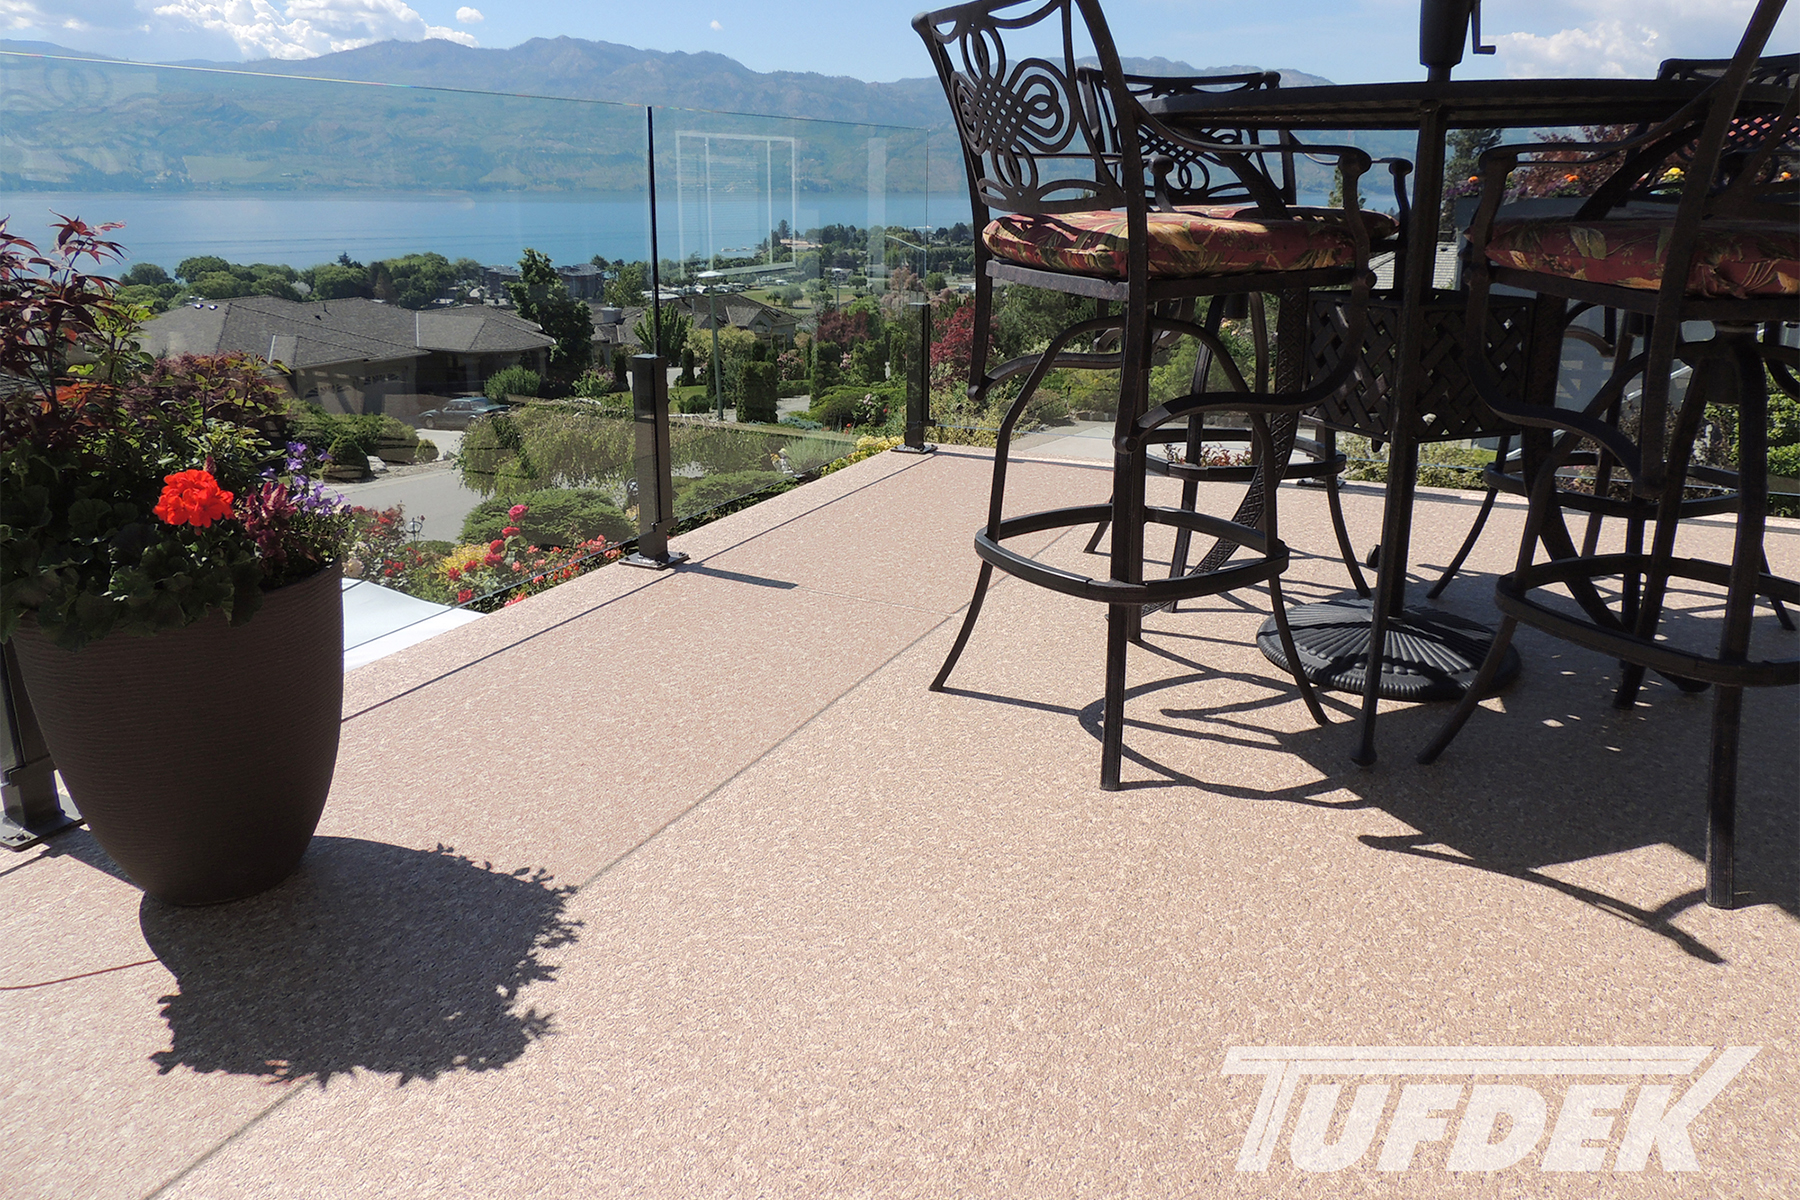 Ordinary Exterior Vinyl Flooring #13: Tufdek Vinyl Deck Waterproofing And Flooring Products